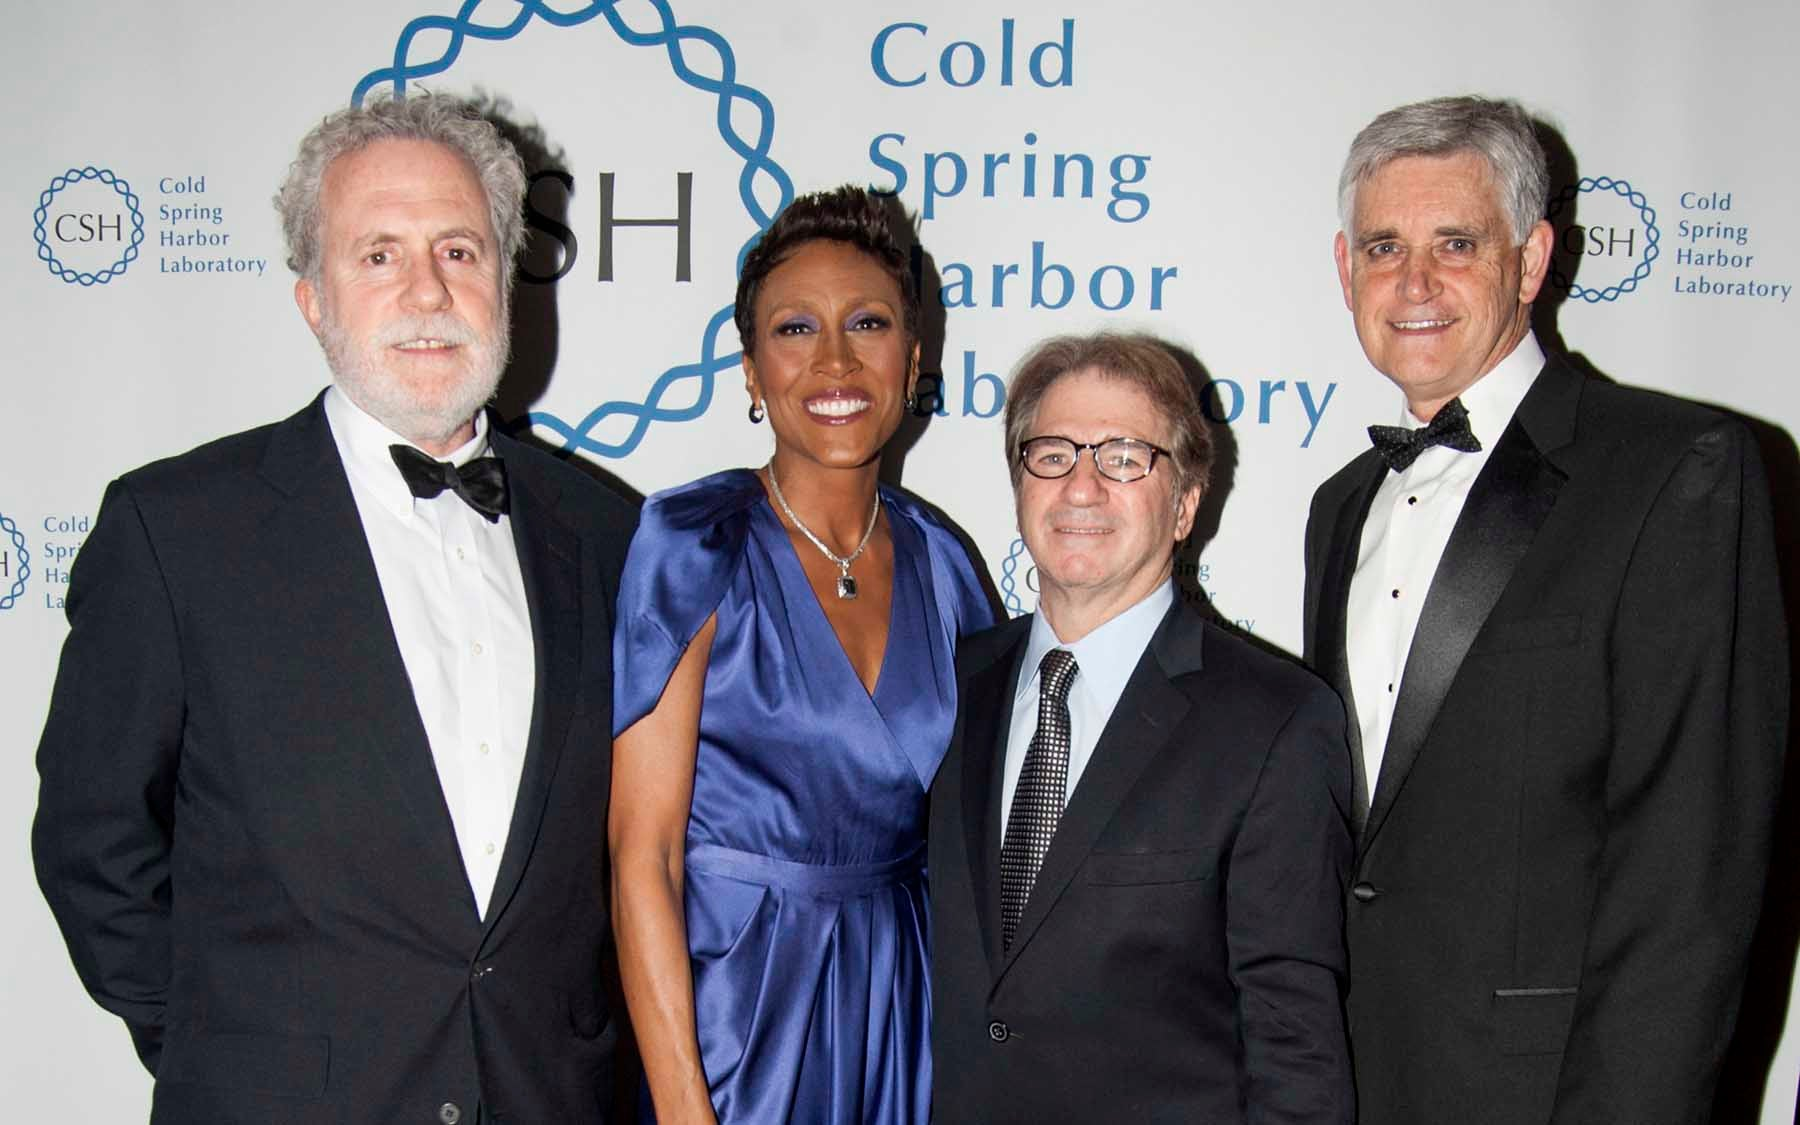 At the gala: Double Helix Medal honorees Peter Neufeld, Robin Roberts and Barry Scheck joined by CSHL President and CEO Bruce Stillman